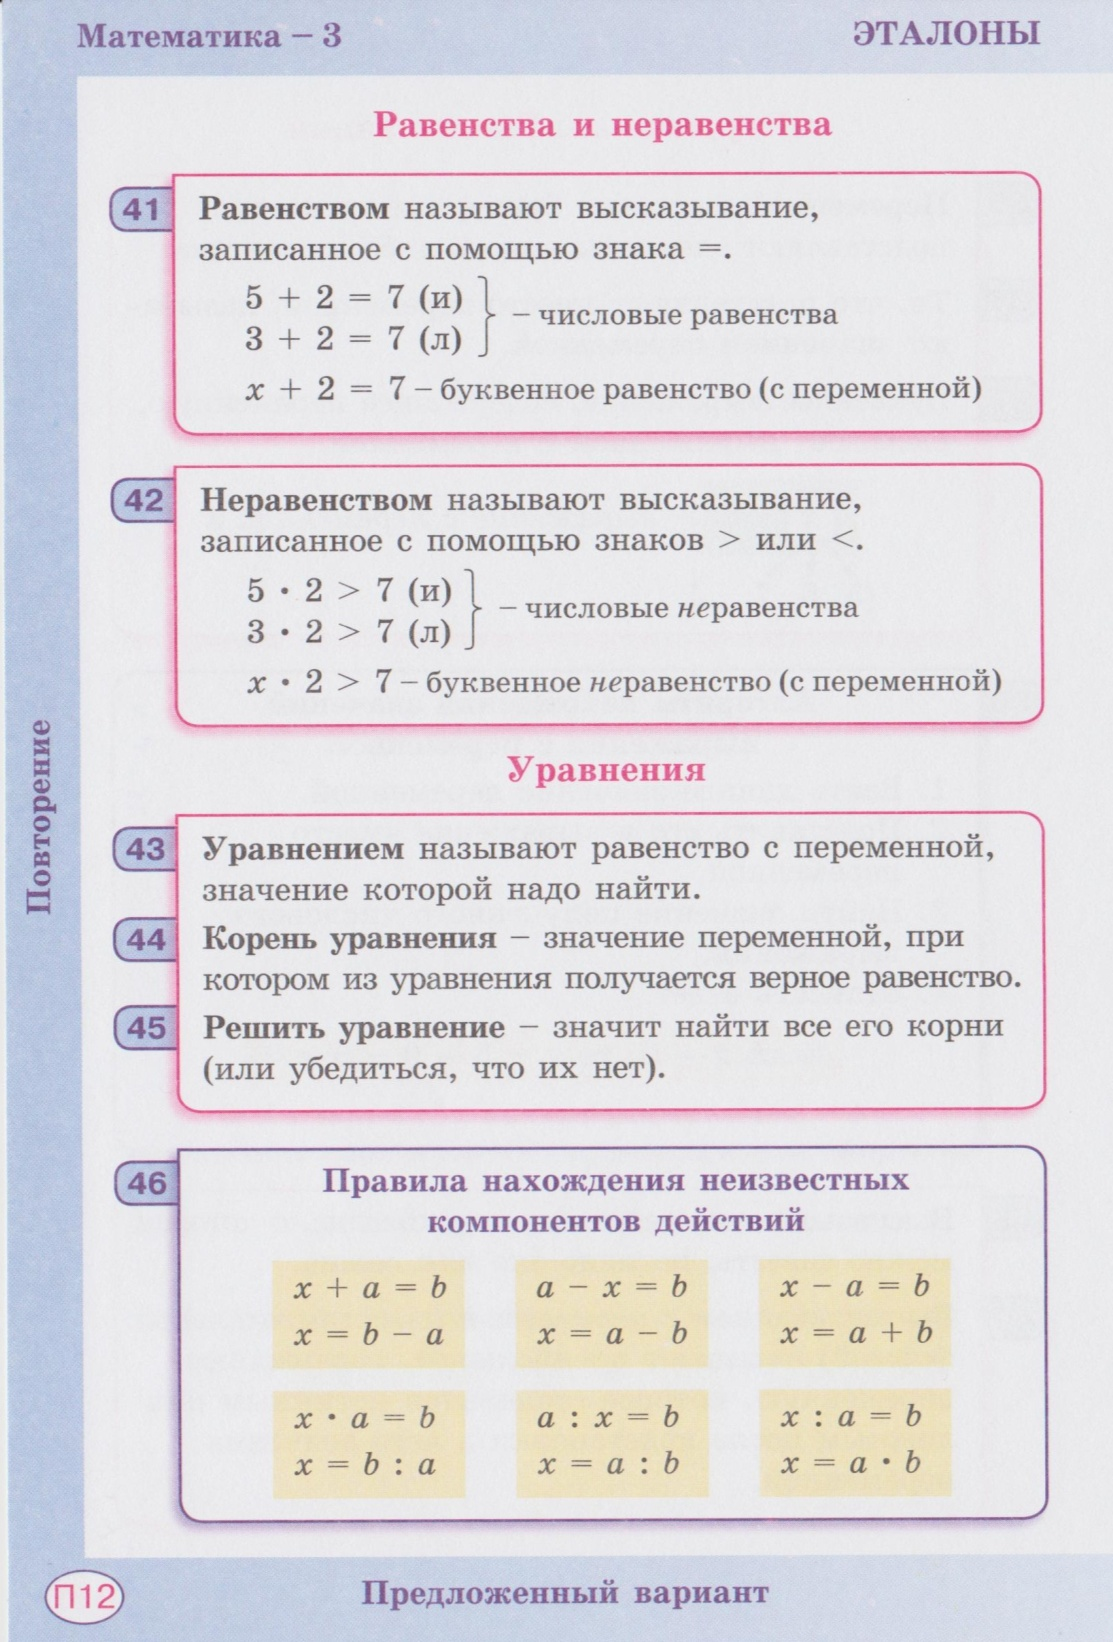 C:\Users\Настя\Pictures\2012-09-08 12\12 001.jpg